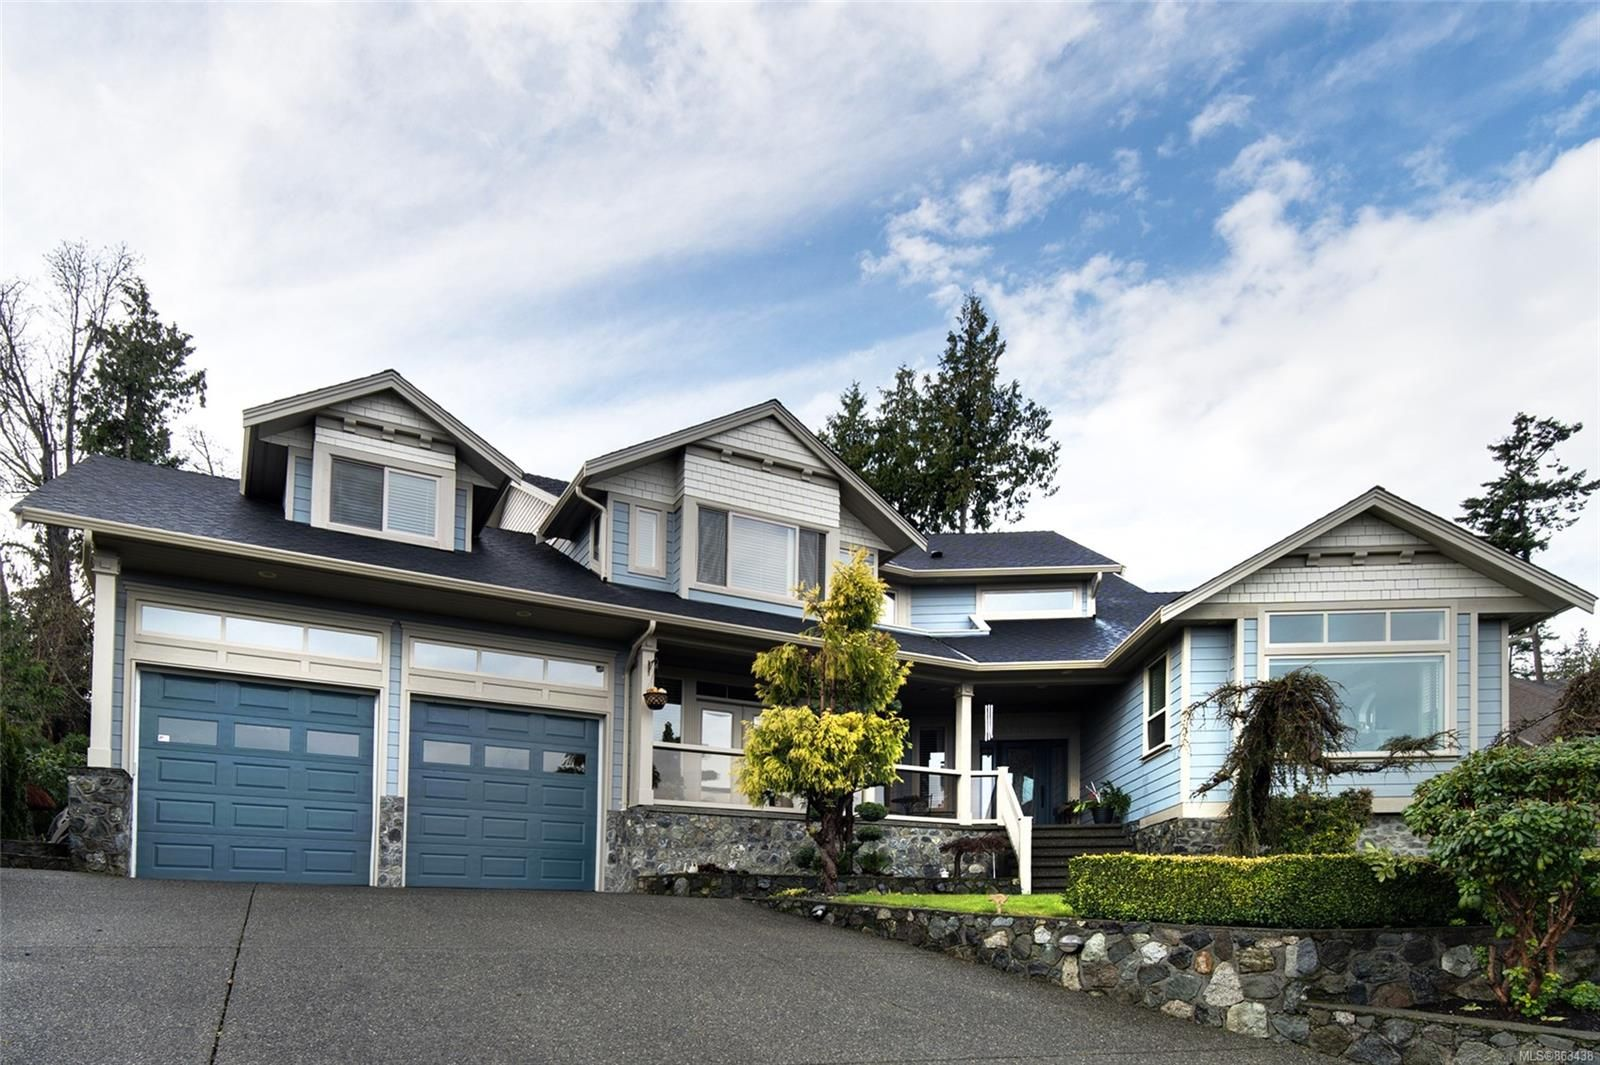 Main Photo: 7010 Beach View Crt in : CS Island View House for sale (Central Saanich)  : MLS®# 863438